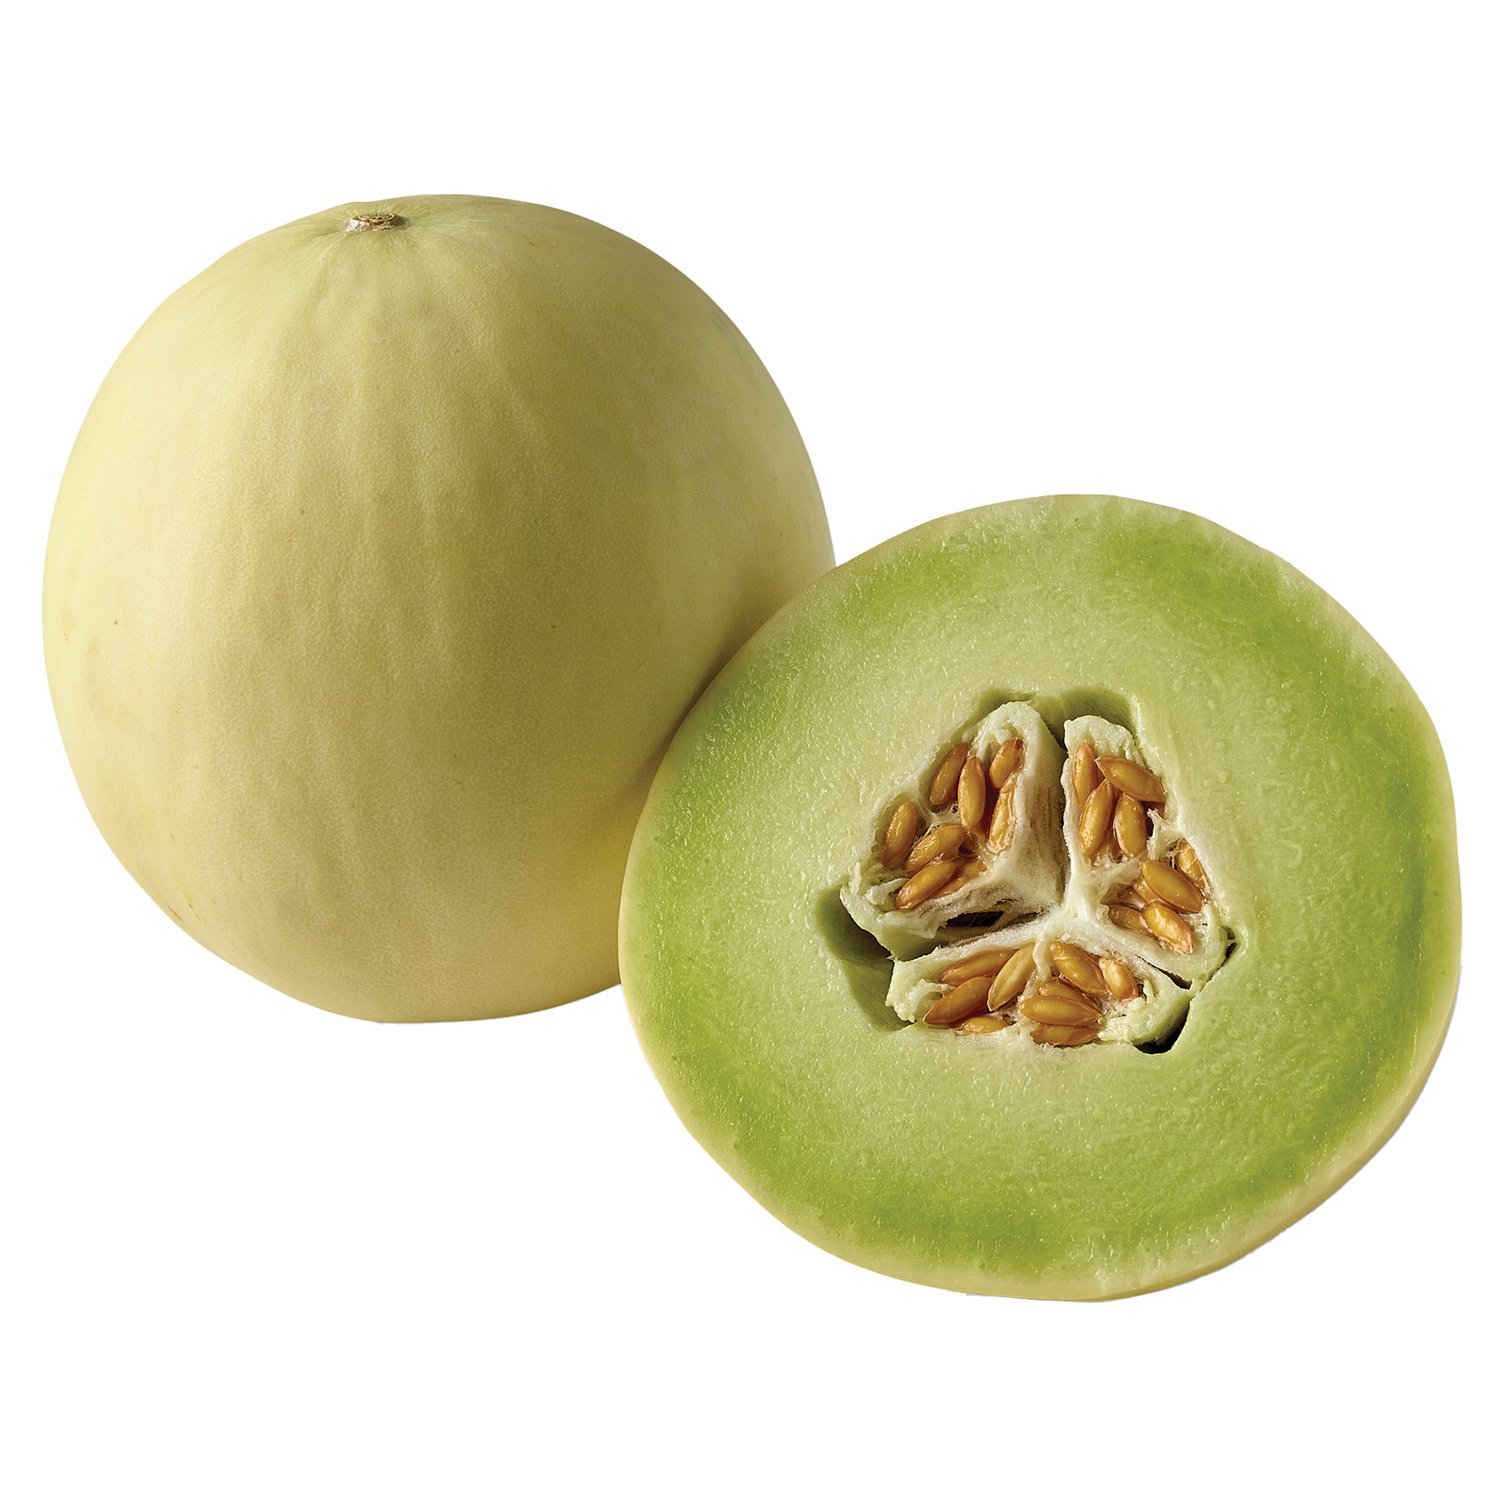 Fresh Honeydew Melon Shop Fruit At H E B It also promotes healthy lungs and relieves stress. fresh honeydew melon